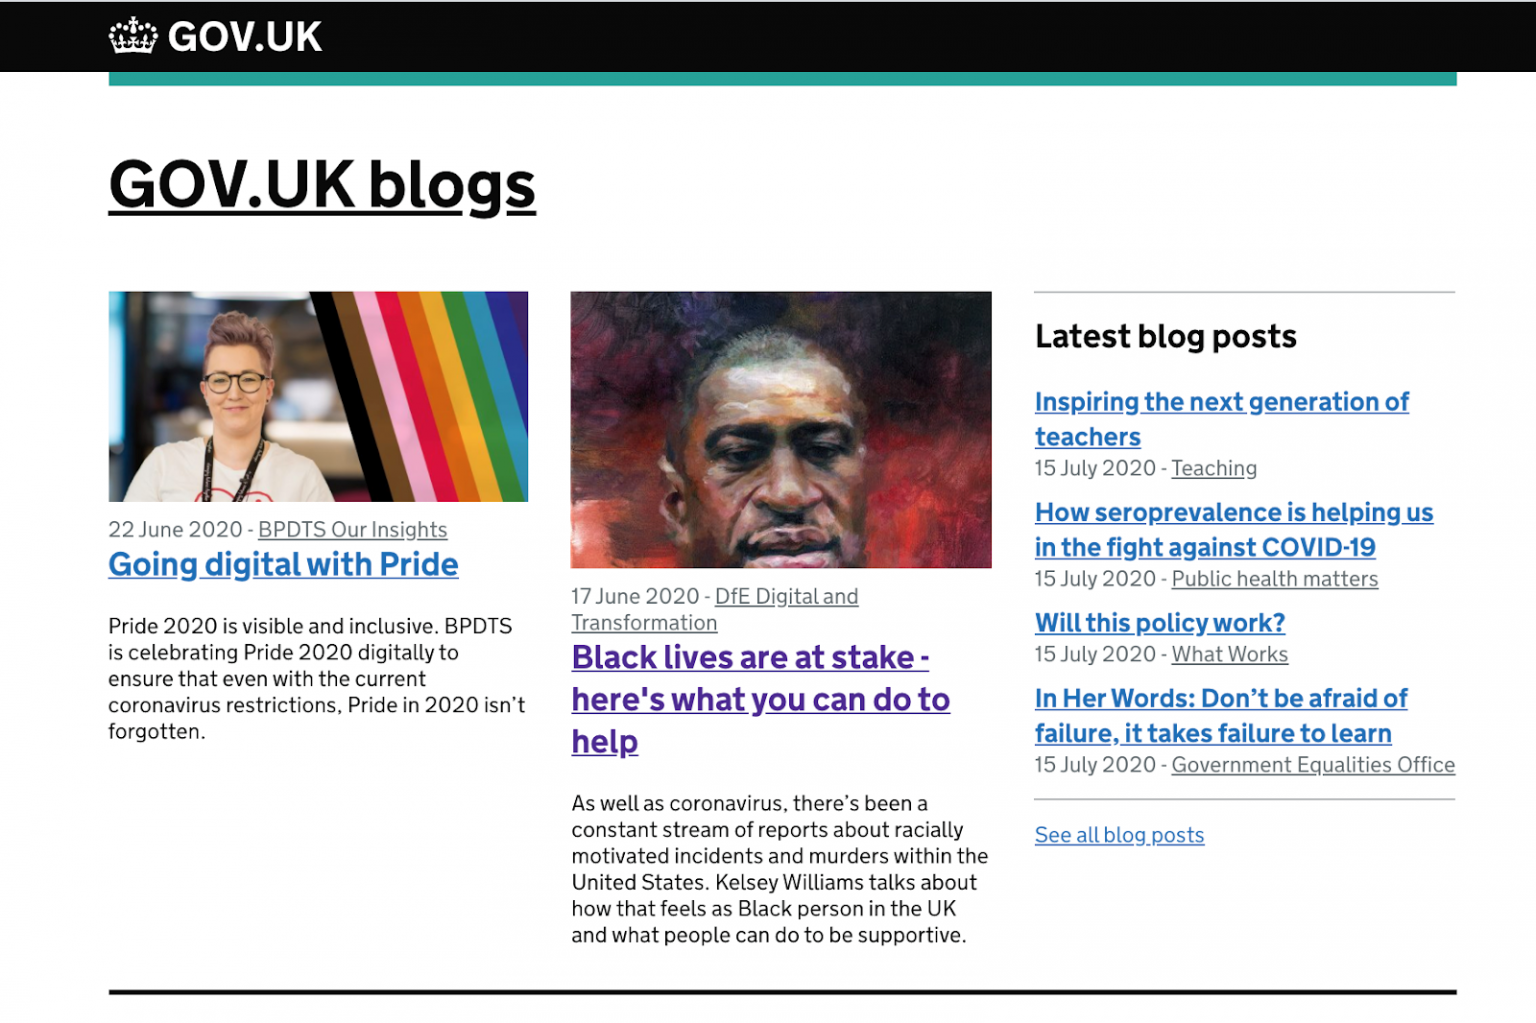 A screen shot of Kelsey Williams blog post for DfE Digital on the GOV.UK blog page